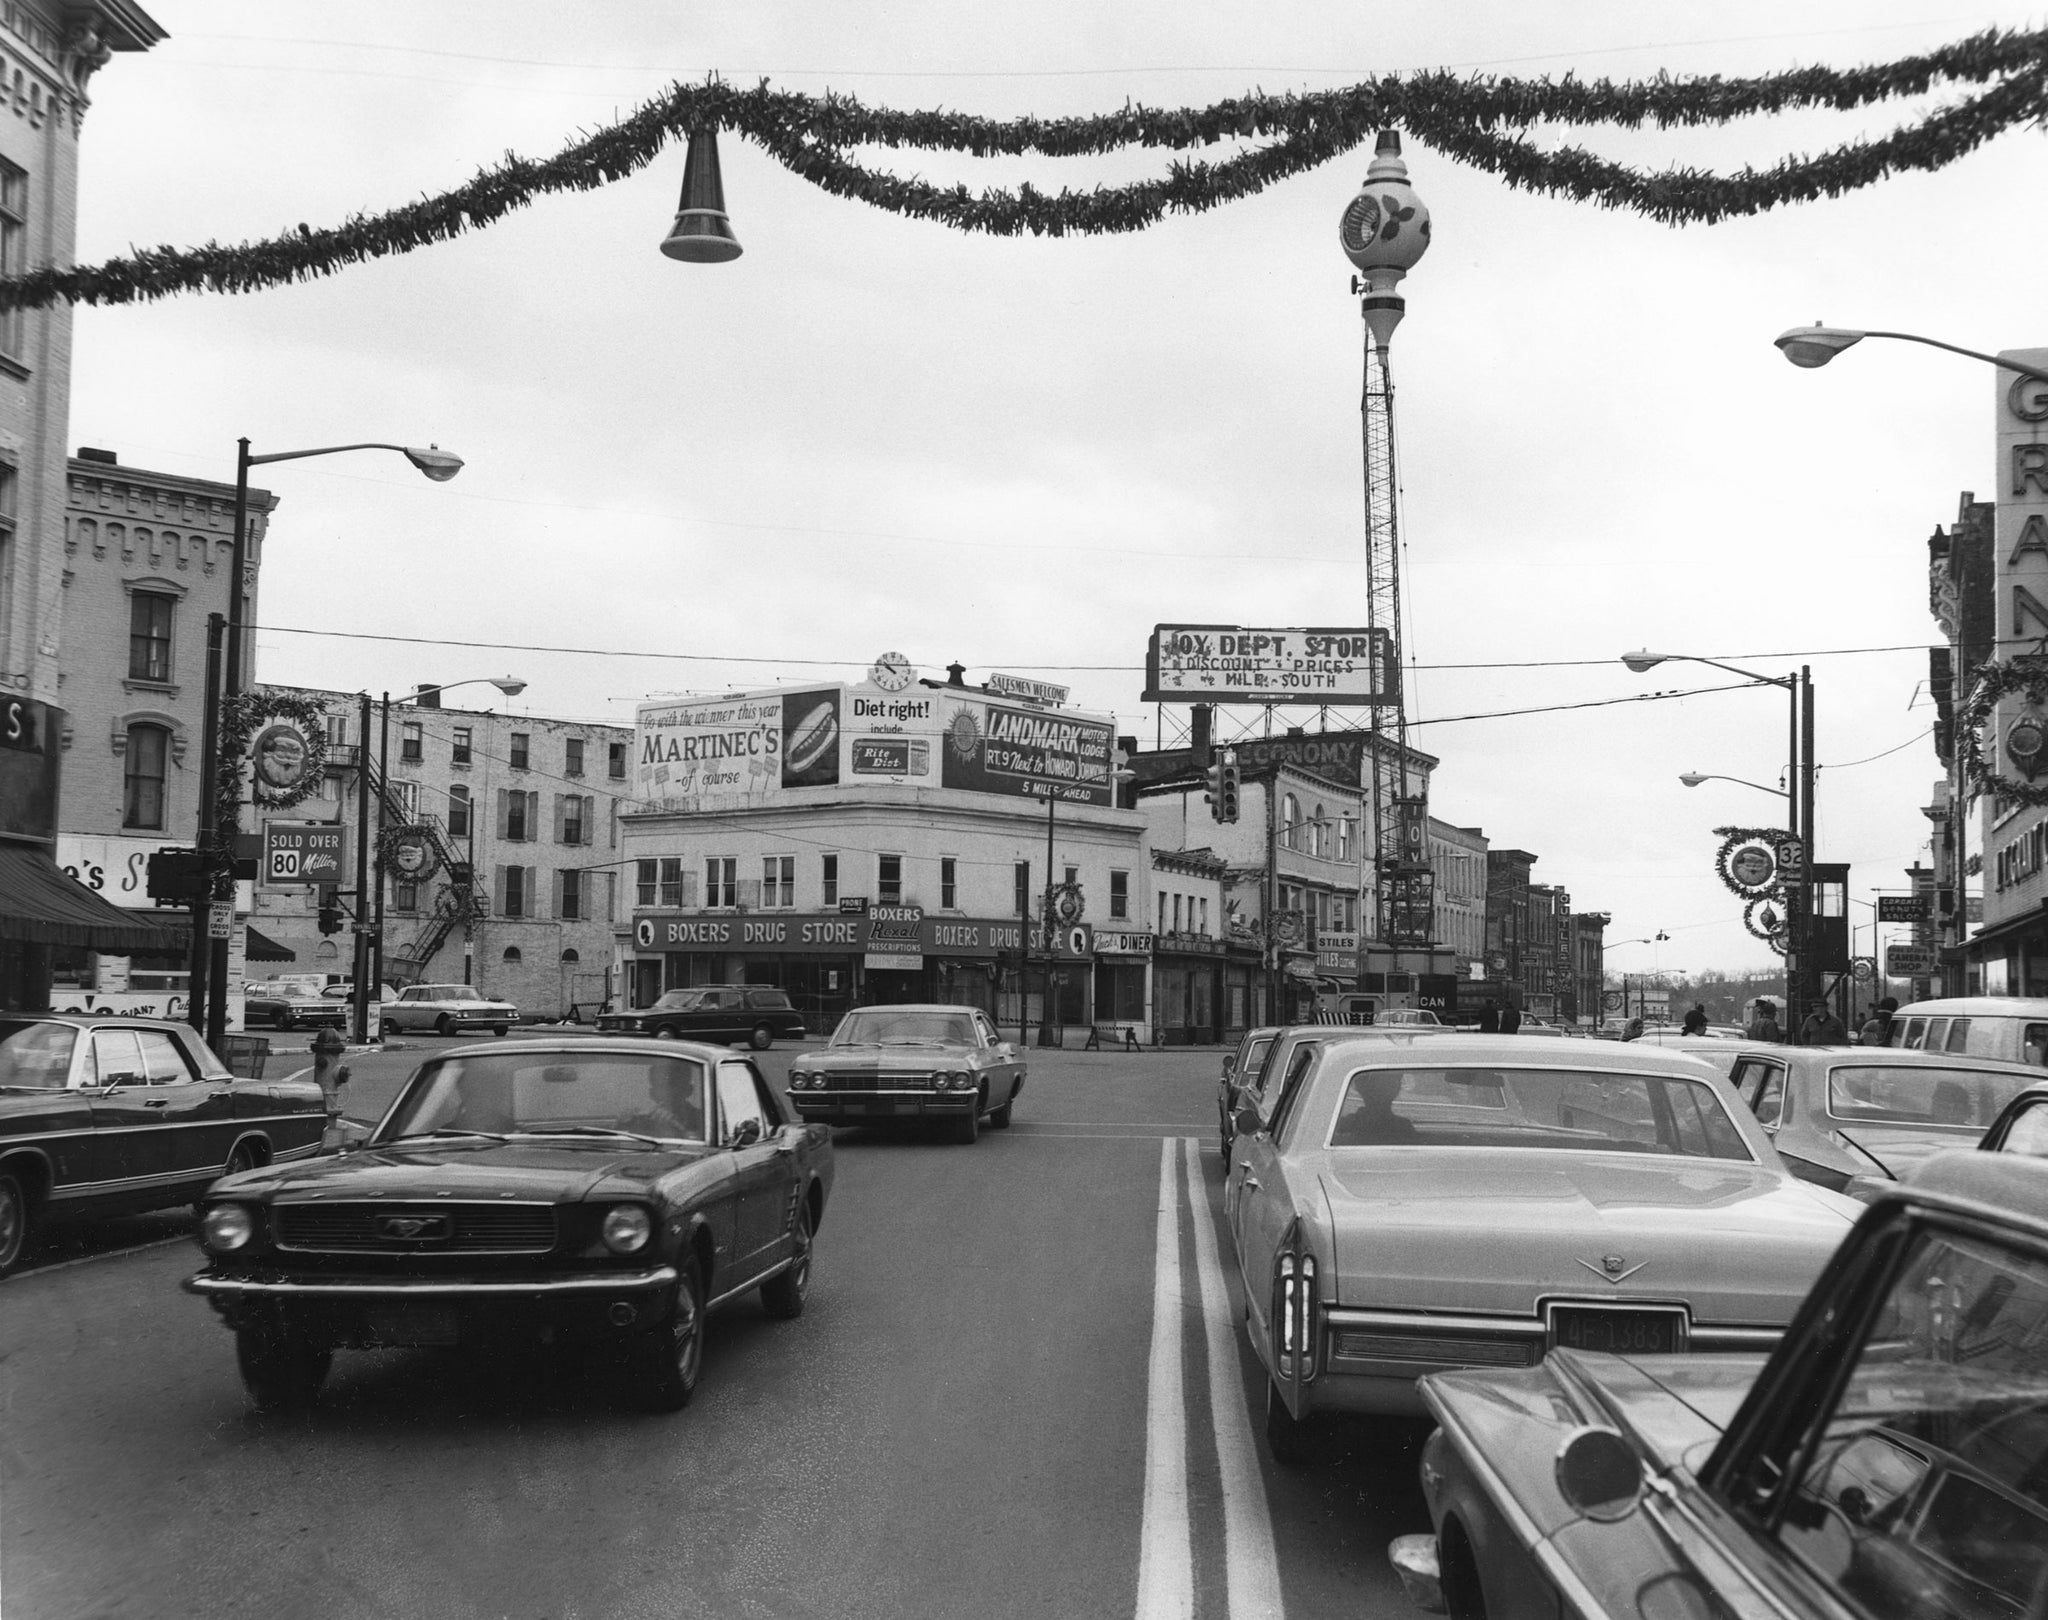 View down Glen Street toward Boxer's Drug Store on the intersection of Glen and Warren Streets, November 1968. Note the Christmas decorations hanging above the street. -- Folklife Center at Crandall Public Library